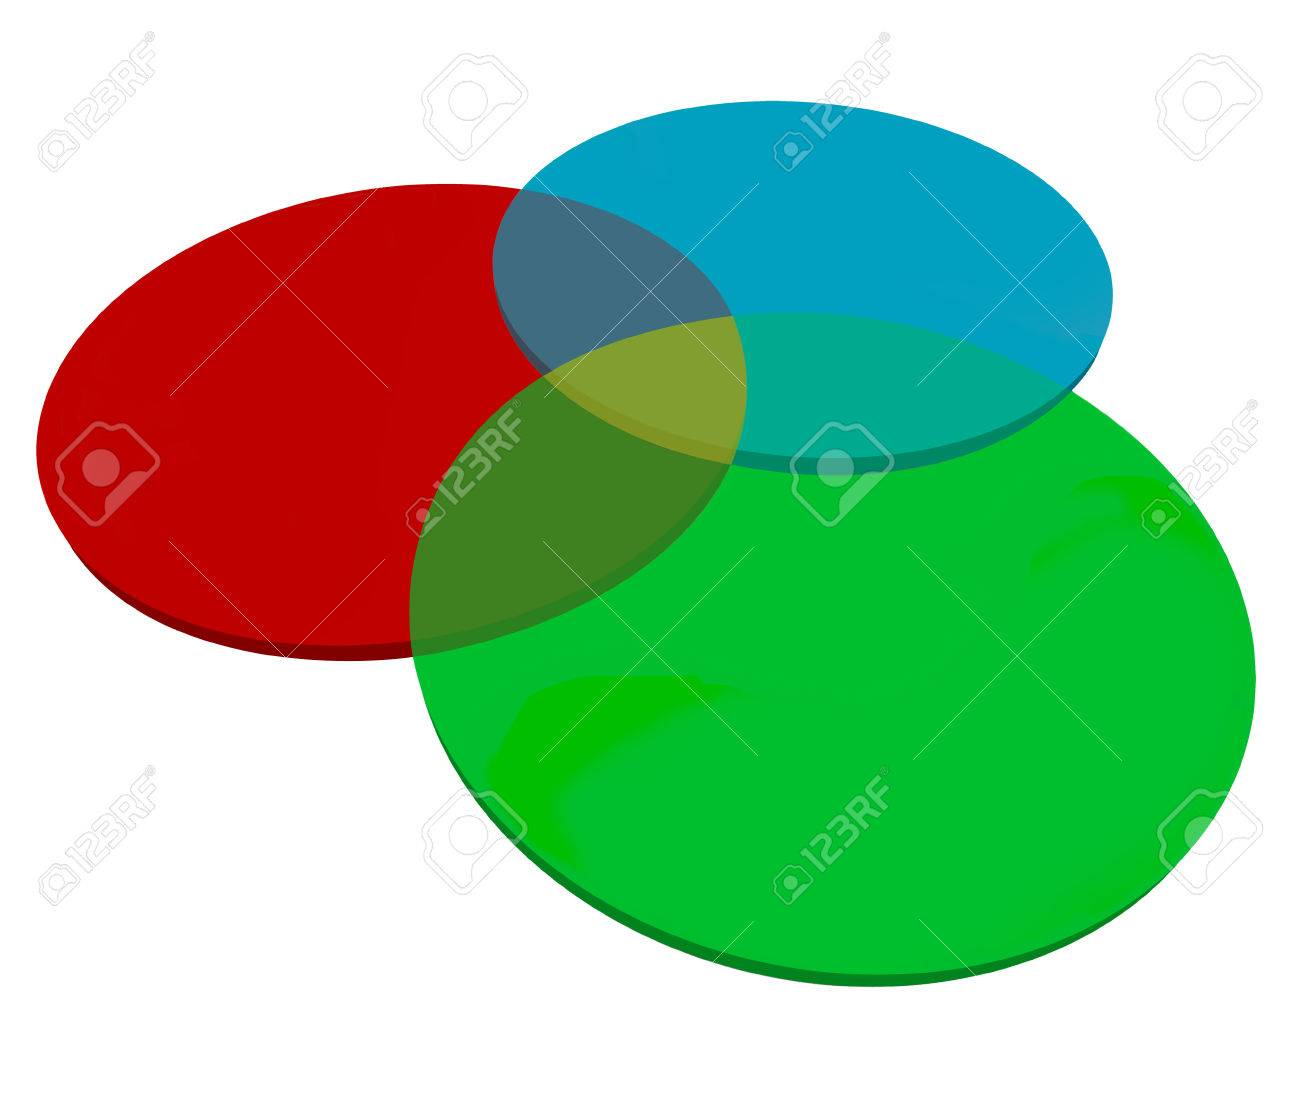 hight resolution of stock photo three or 3 venn diagram overlapping circles to illustrate shared or common qualities characteristics qualities or agreed upon elements